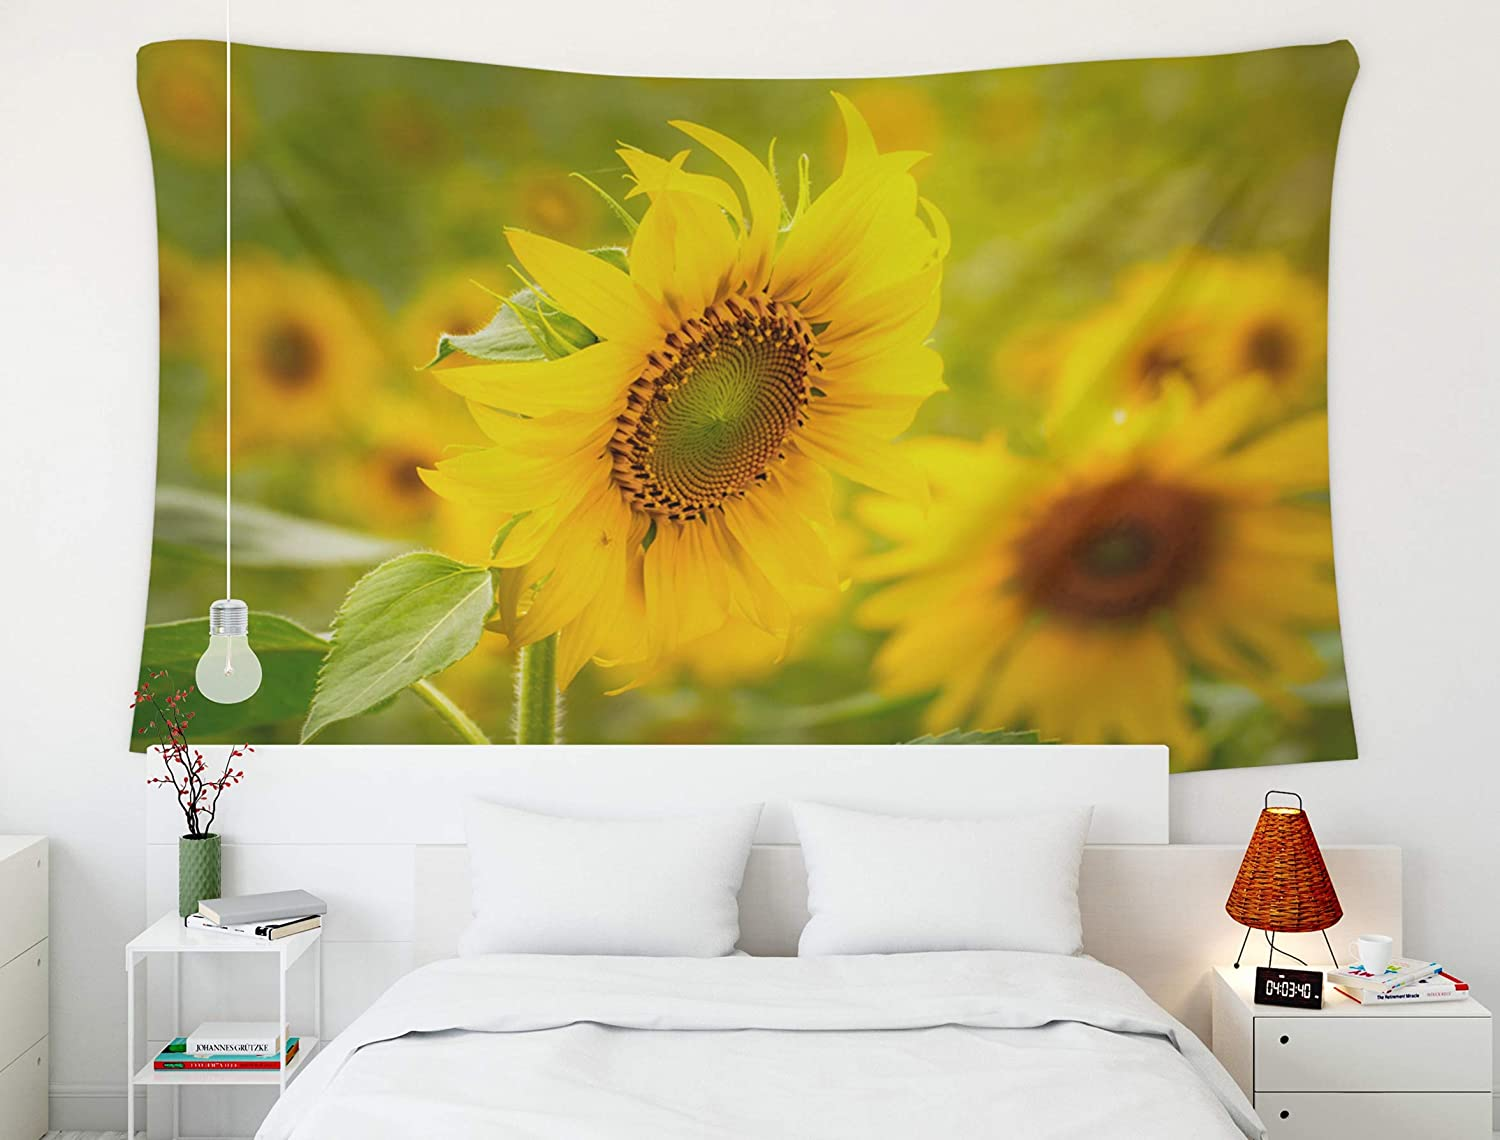 Wall Hanging Tapestry DIY Home Decor Tropical Flamingo Sunflower Many Design New